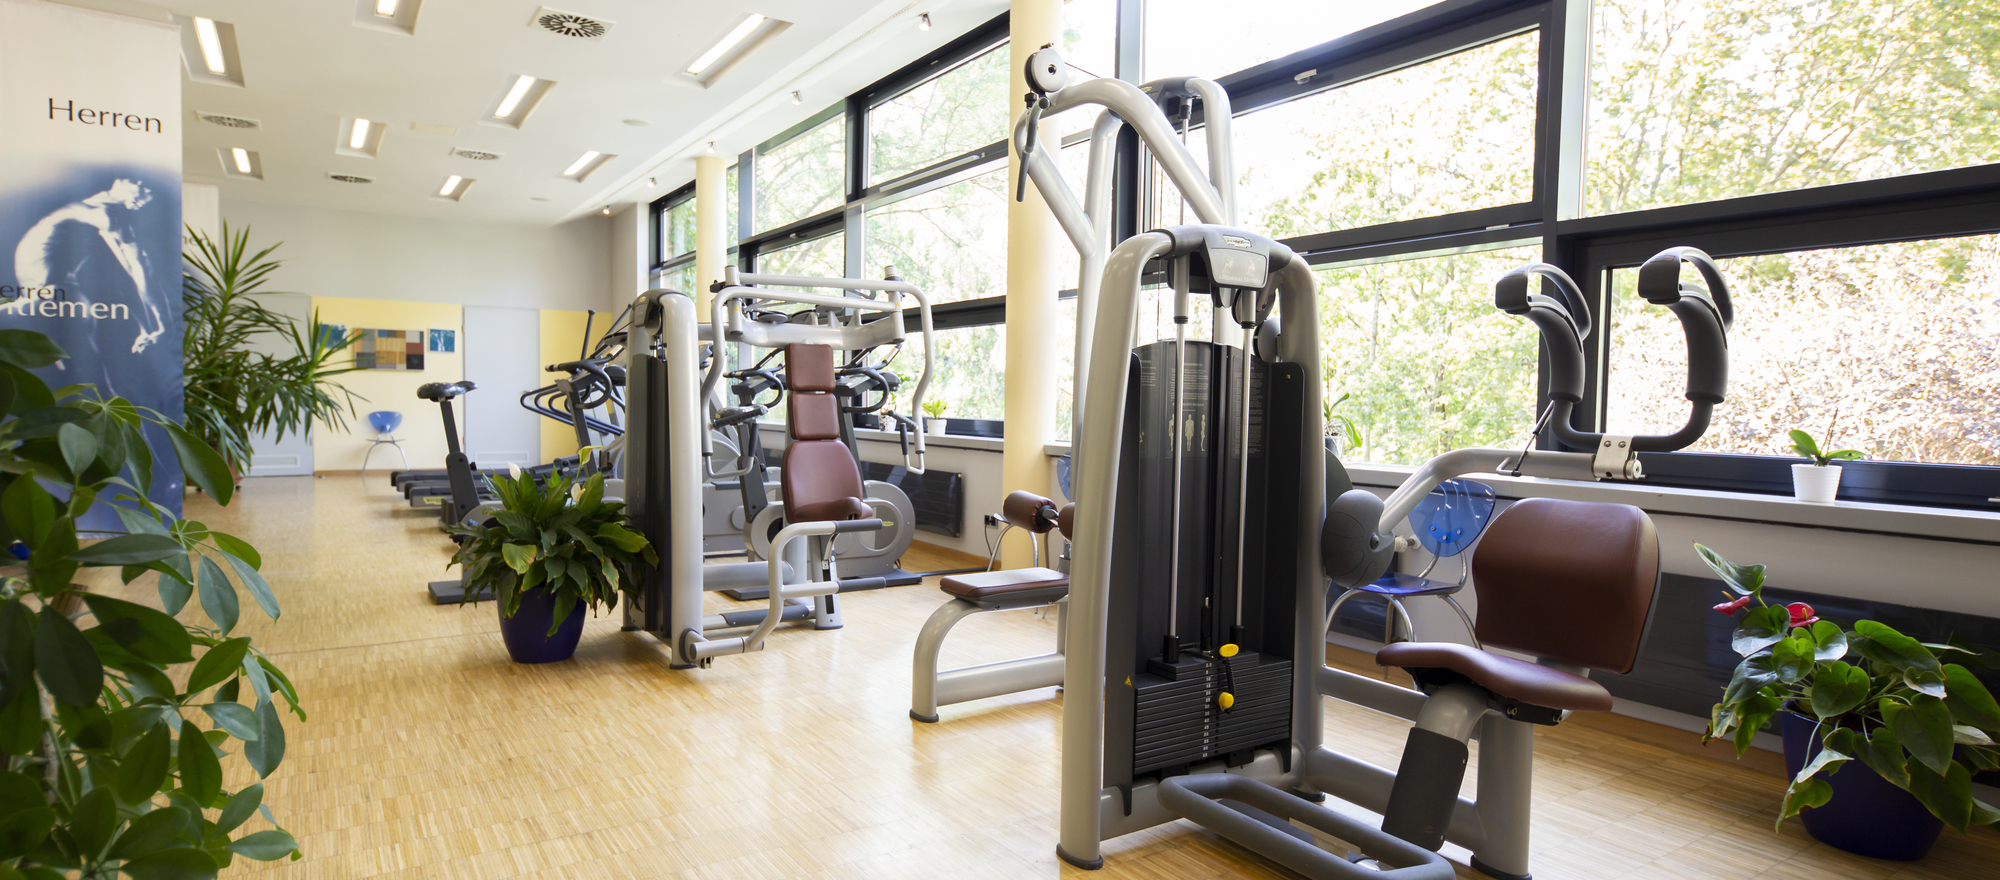 Spacious fitness center at the Ringhotel Villa Westerberge, 3-star hotel in Aschersleben